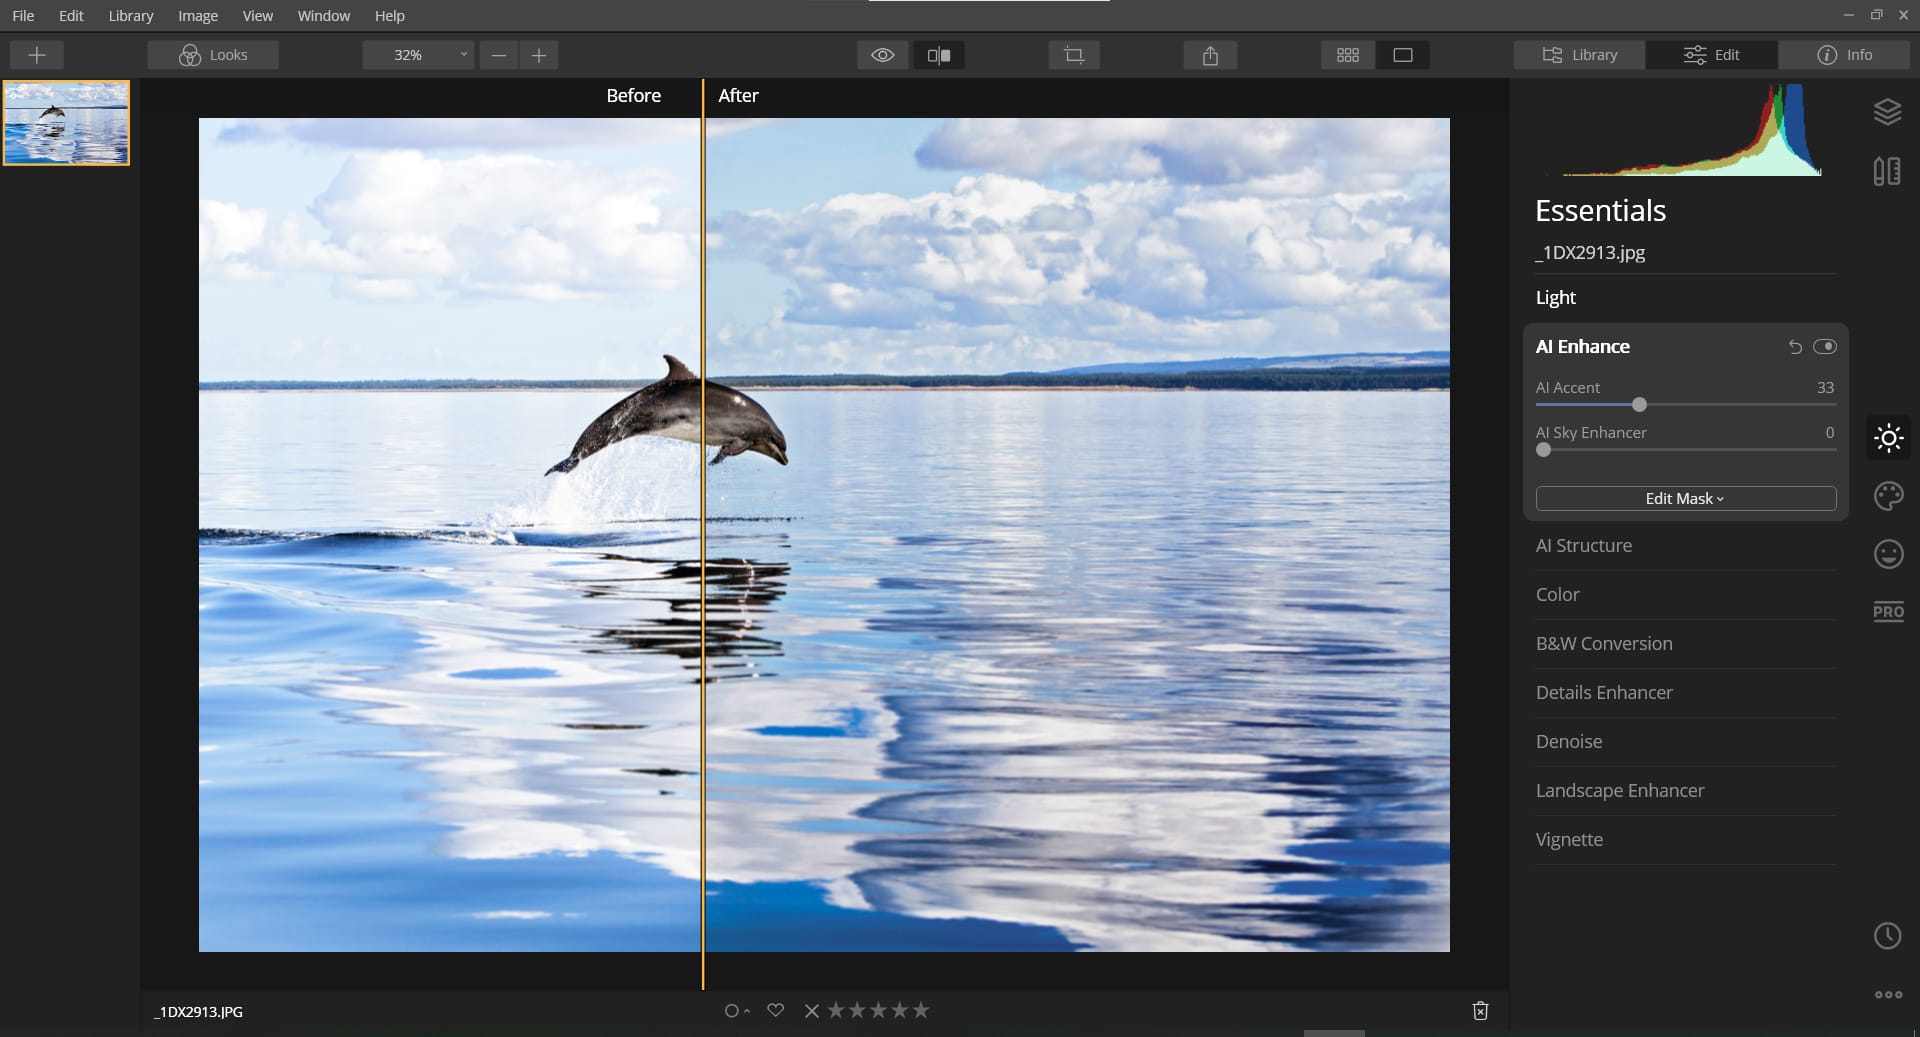 WDC Adopt a Dolphin field officer, Charlie Phillips' amazing photo transformations using Luminar 4